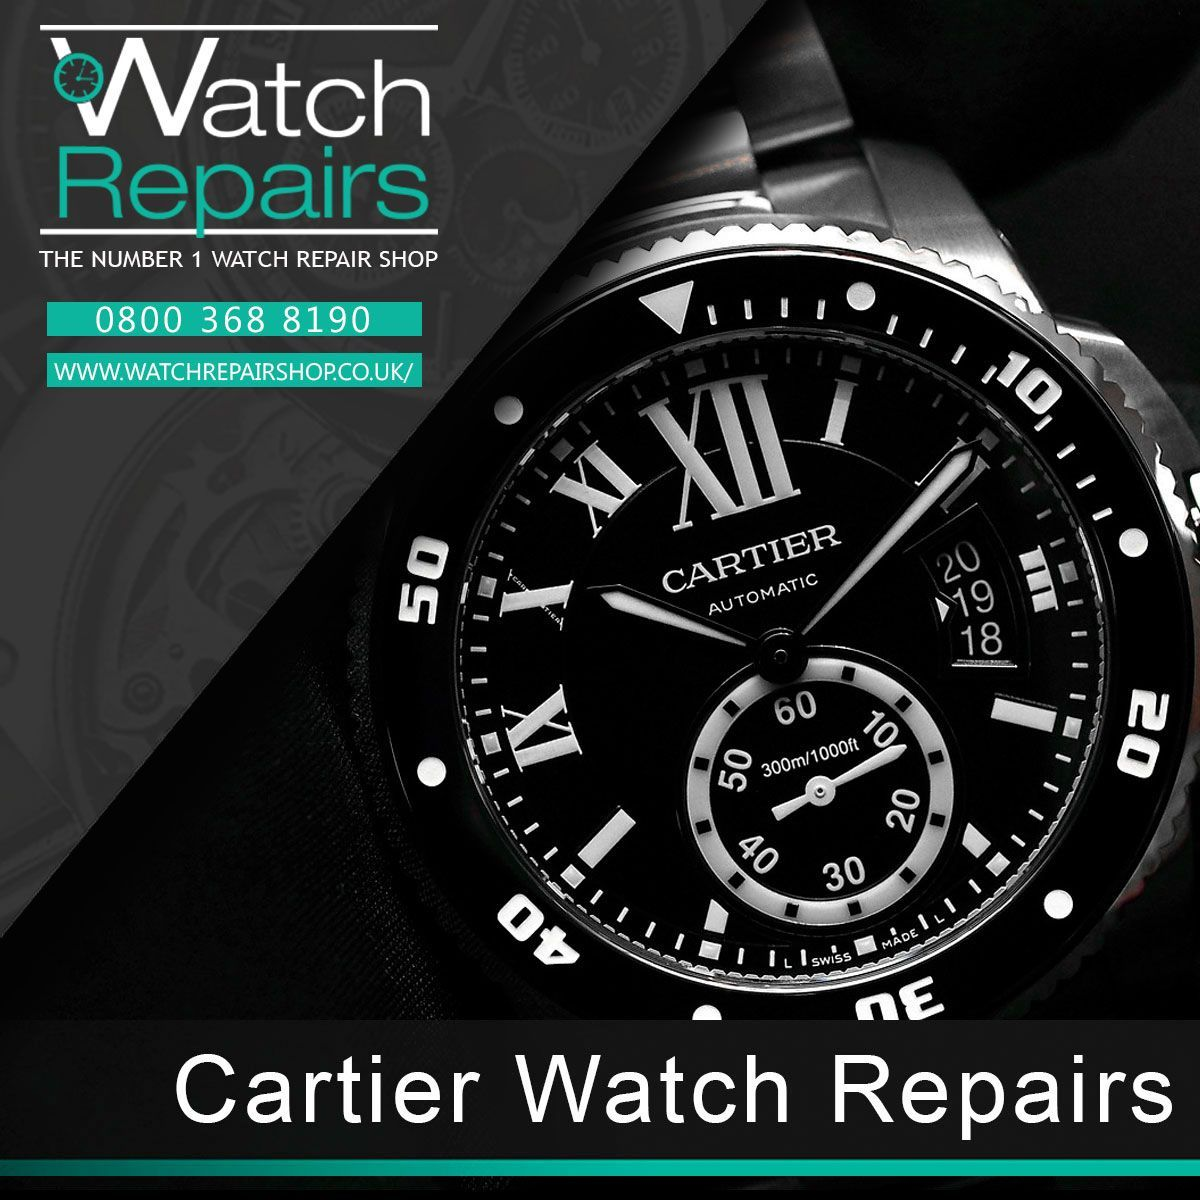 offers Cartier watch repair services